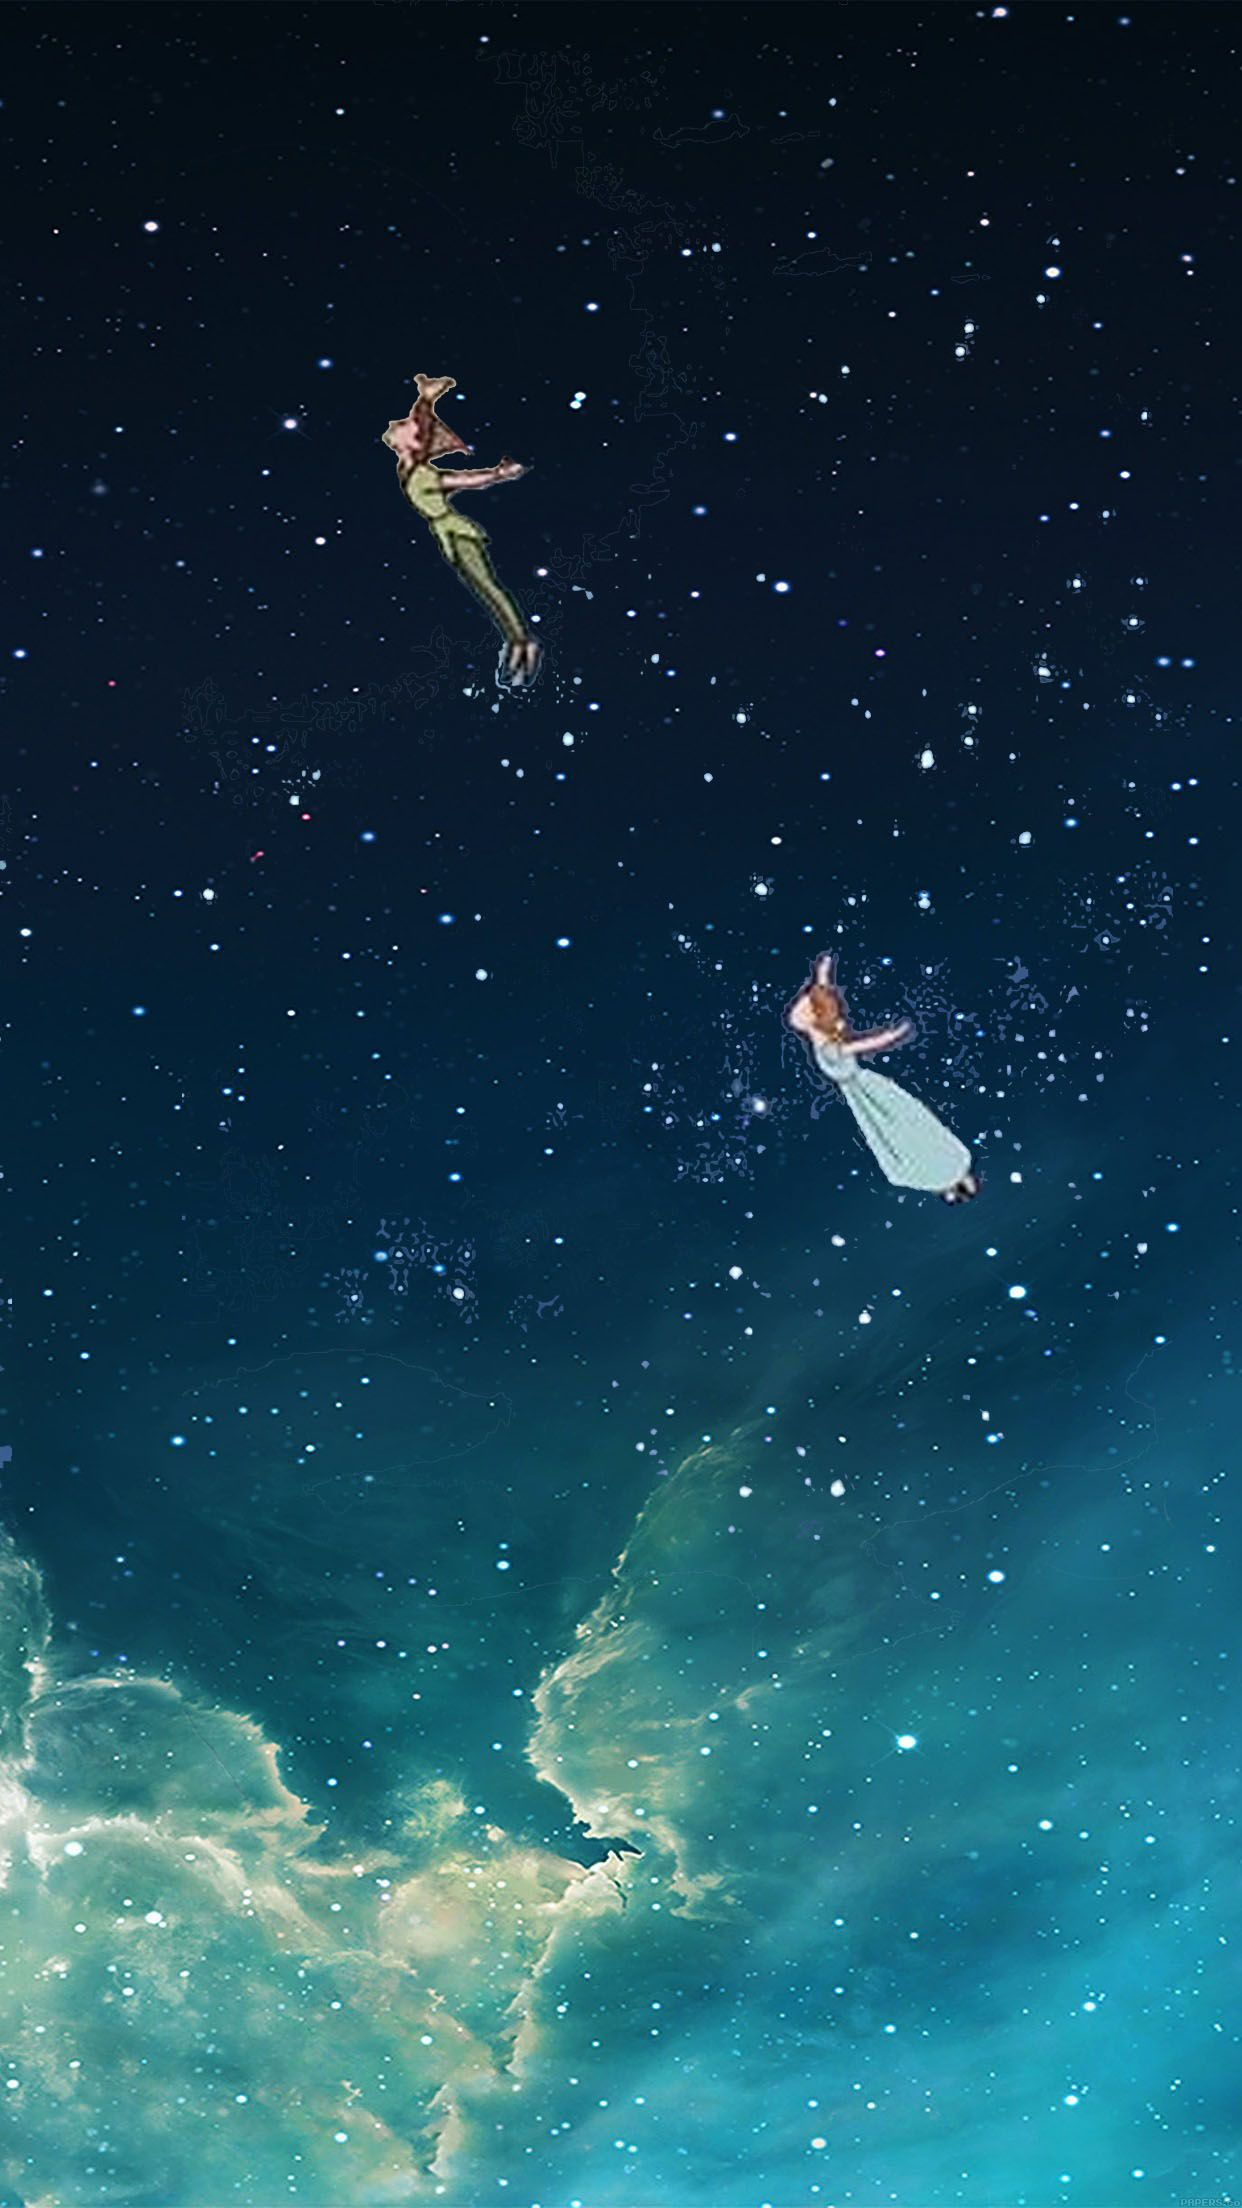 Primeiro Livro Q Li Peter Pan Peter Wendy In 2020 Disney Background Disney Wallpaper Disney Phone Wallpaper